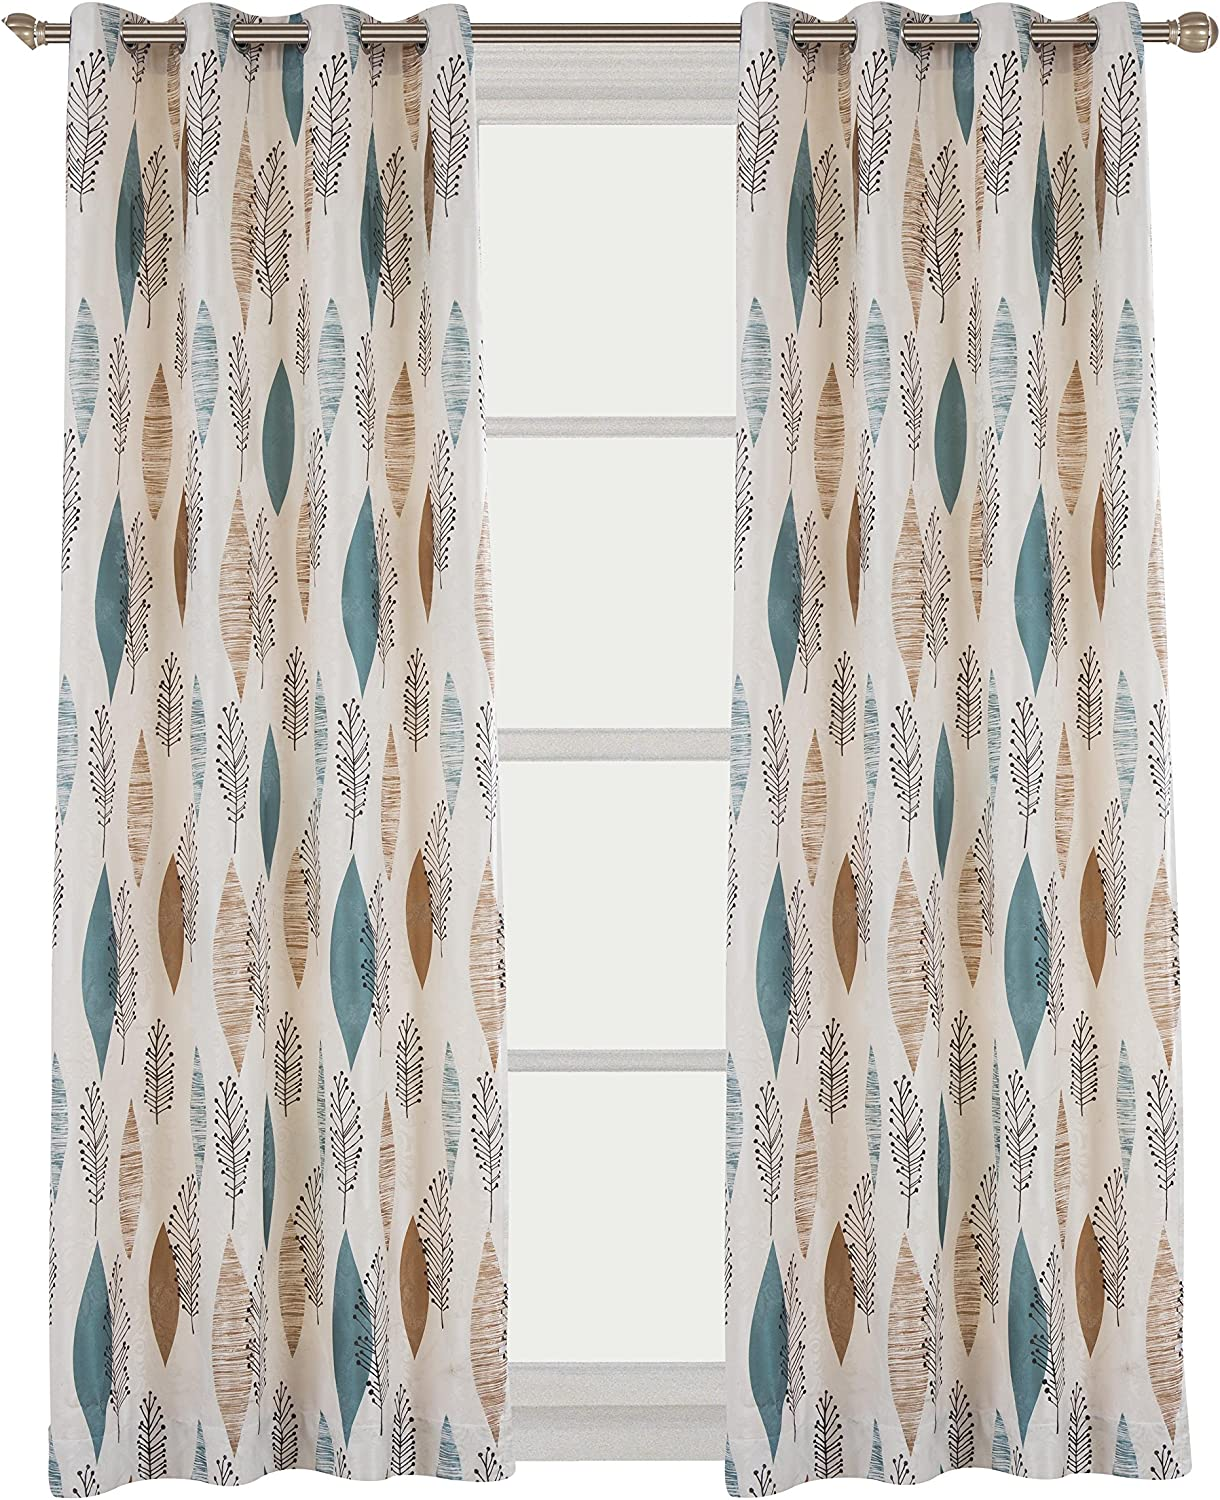 Cherry Home Rustic Curtains with Floral Leaves Blossom Room Darkening Blocking Light Lined Curtains Panel Drapes Bedroom Grommet Top,1 Panel, 52Wx84L Inch